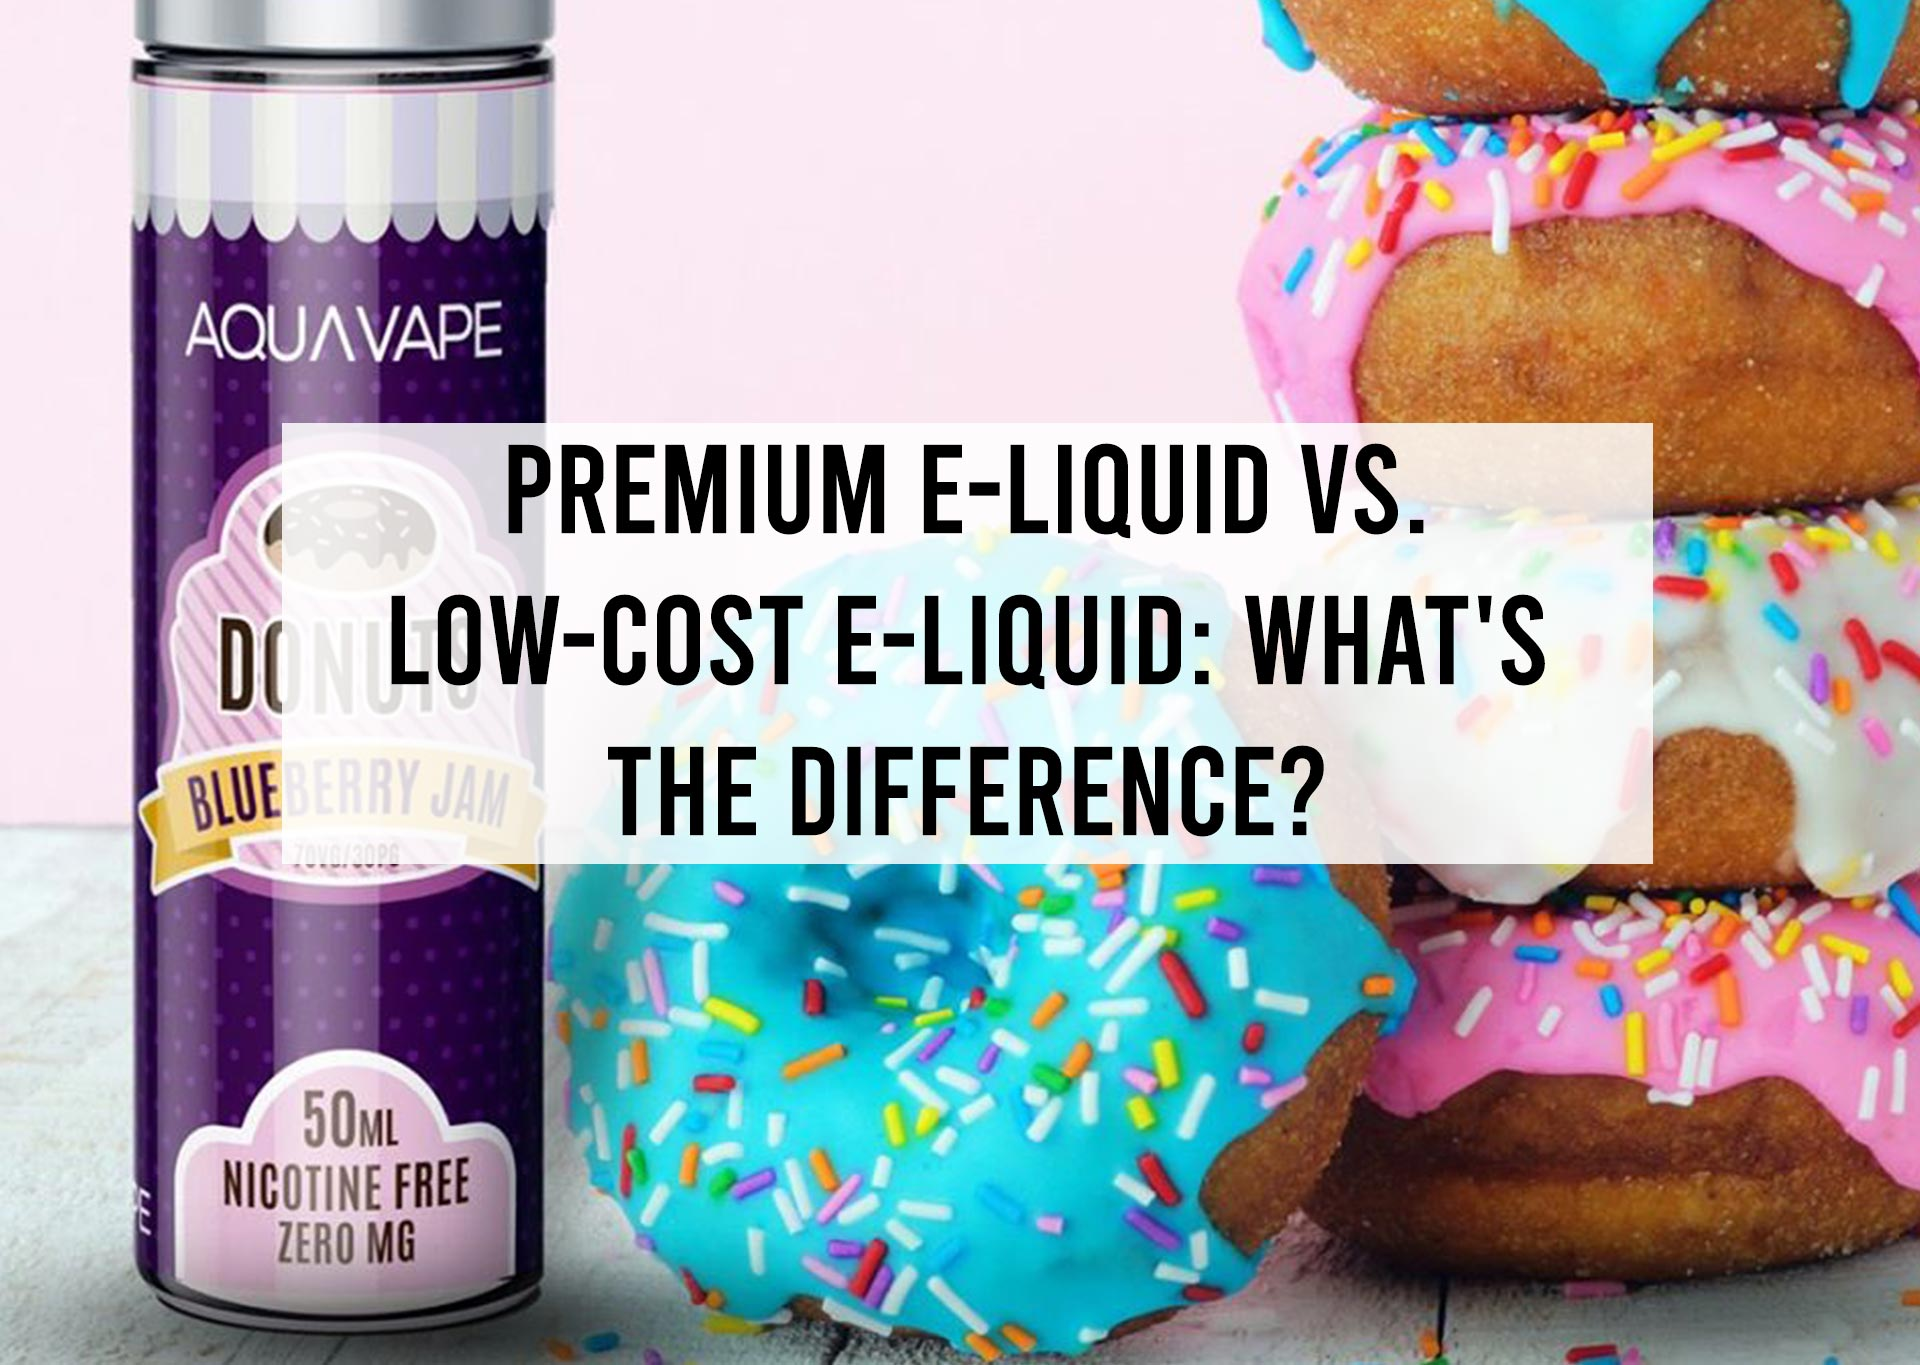 Premium-E-Liquid-vs.-Low-Cost-E-Liquid--What's-the-Difference-